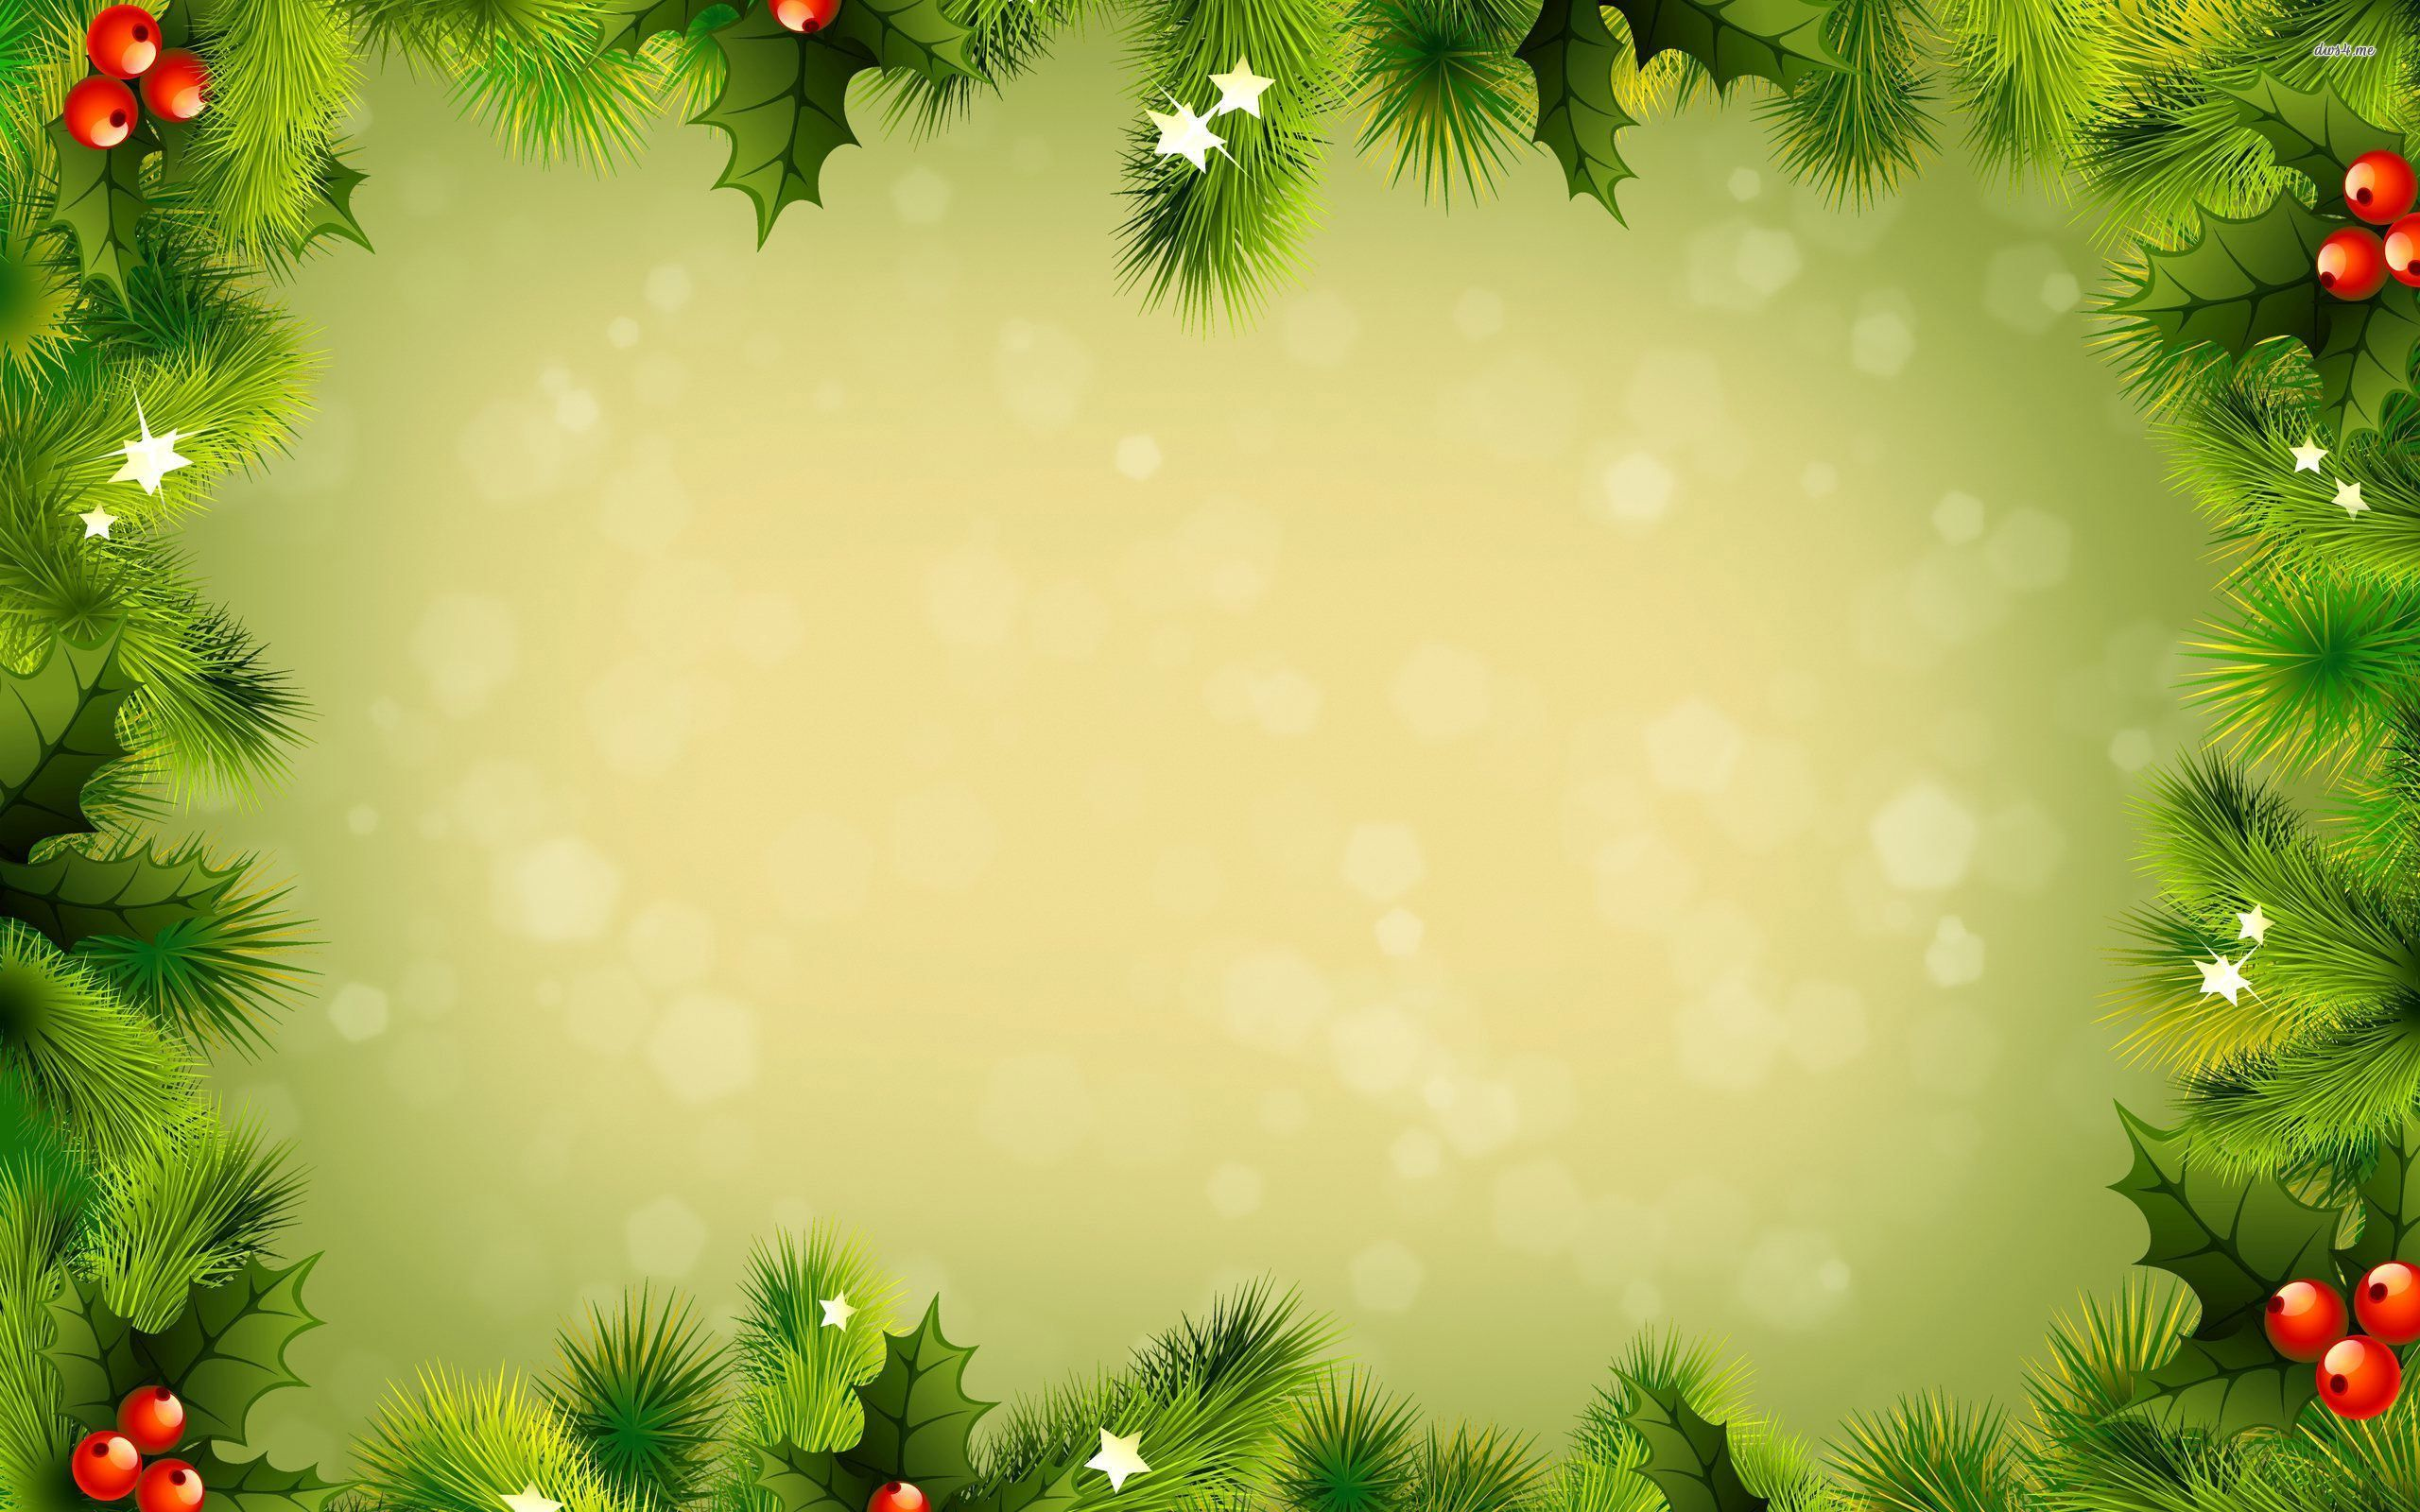 Hd Christmas Wallpaper.Christmas Wallpapers Top Free Christmas Backgrounds